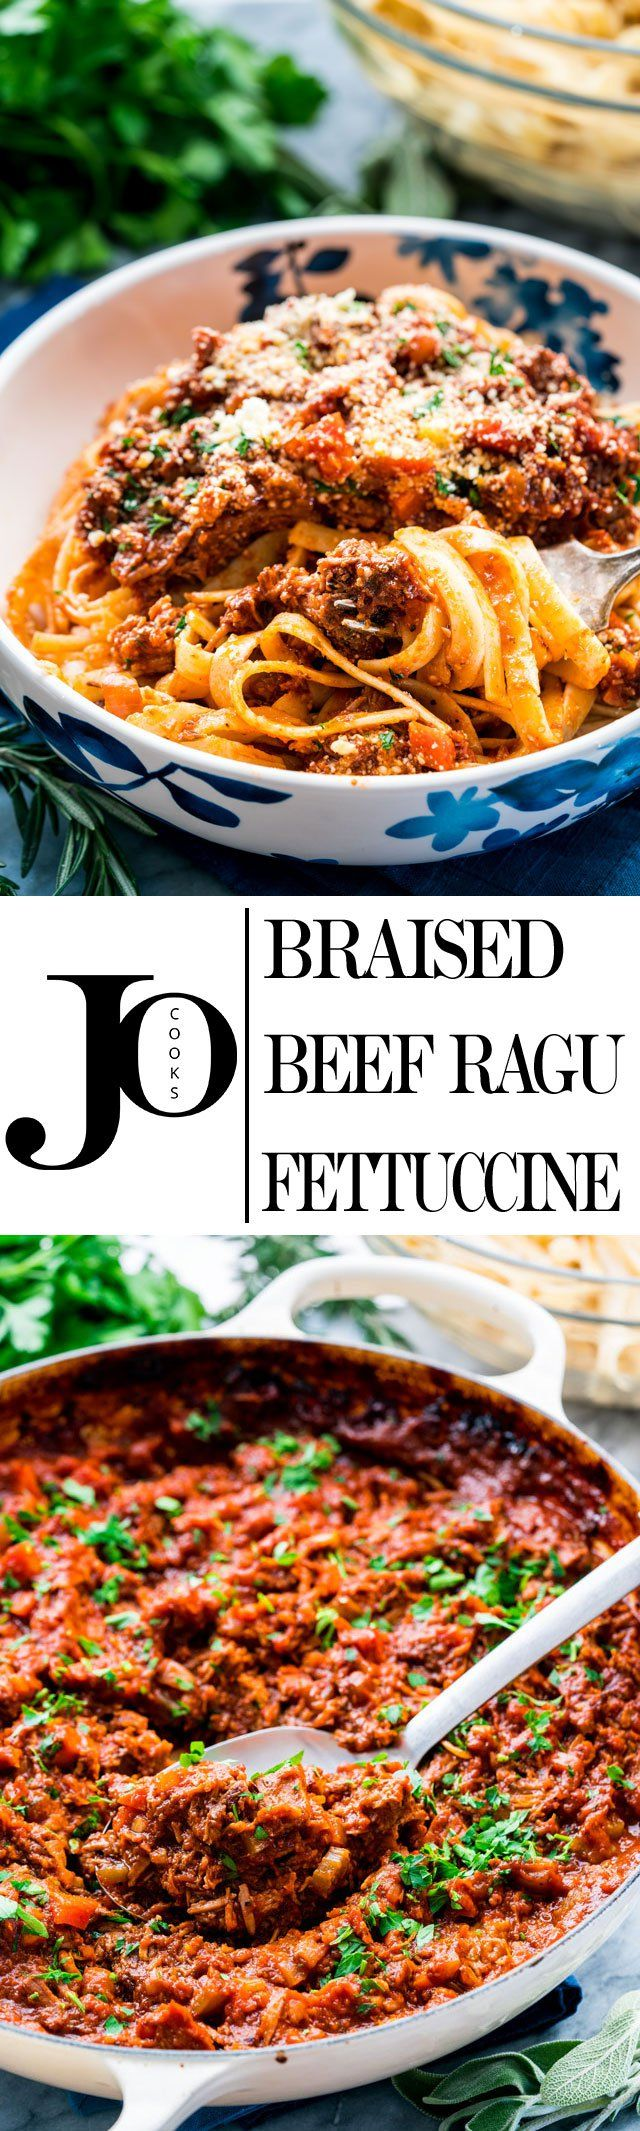 I give you Braised Beef Ragu Fettuccine for when you need a comforting and delicious dish. This slow braised, fall-apart-tender beef is cooked in a rich tomato and veggie sauce served over a bed of al dente fettuccine.